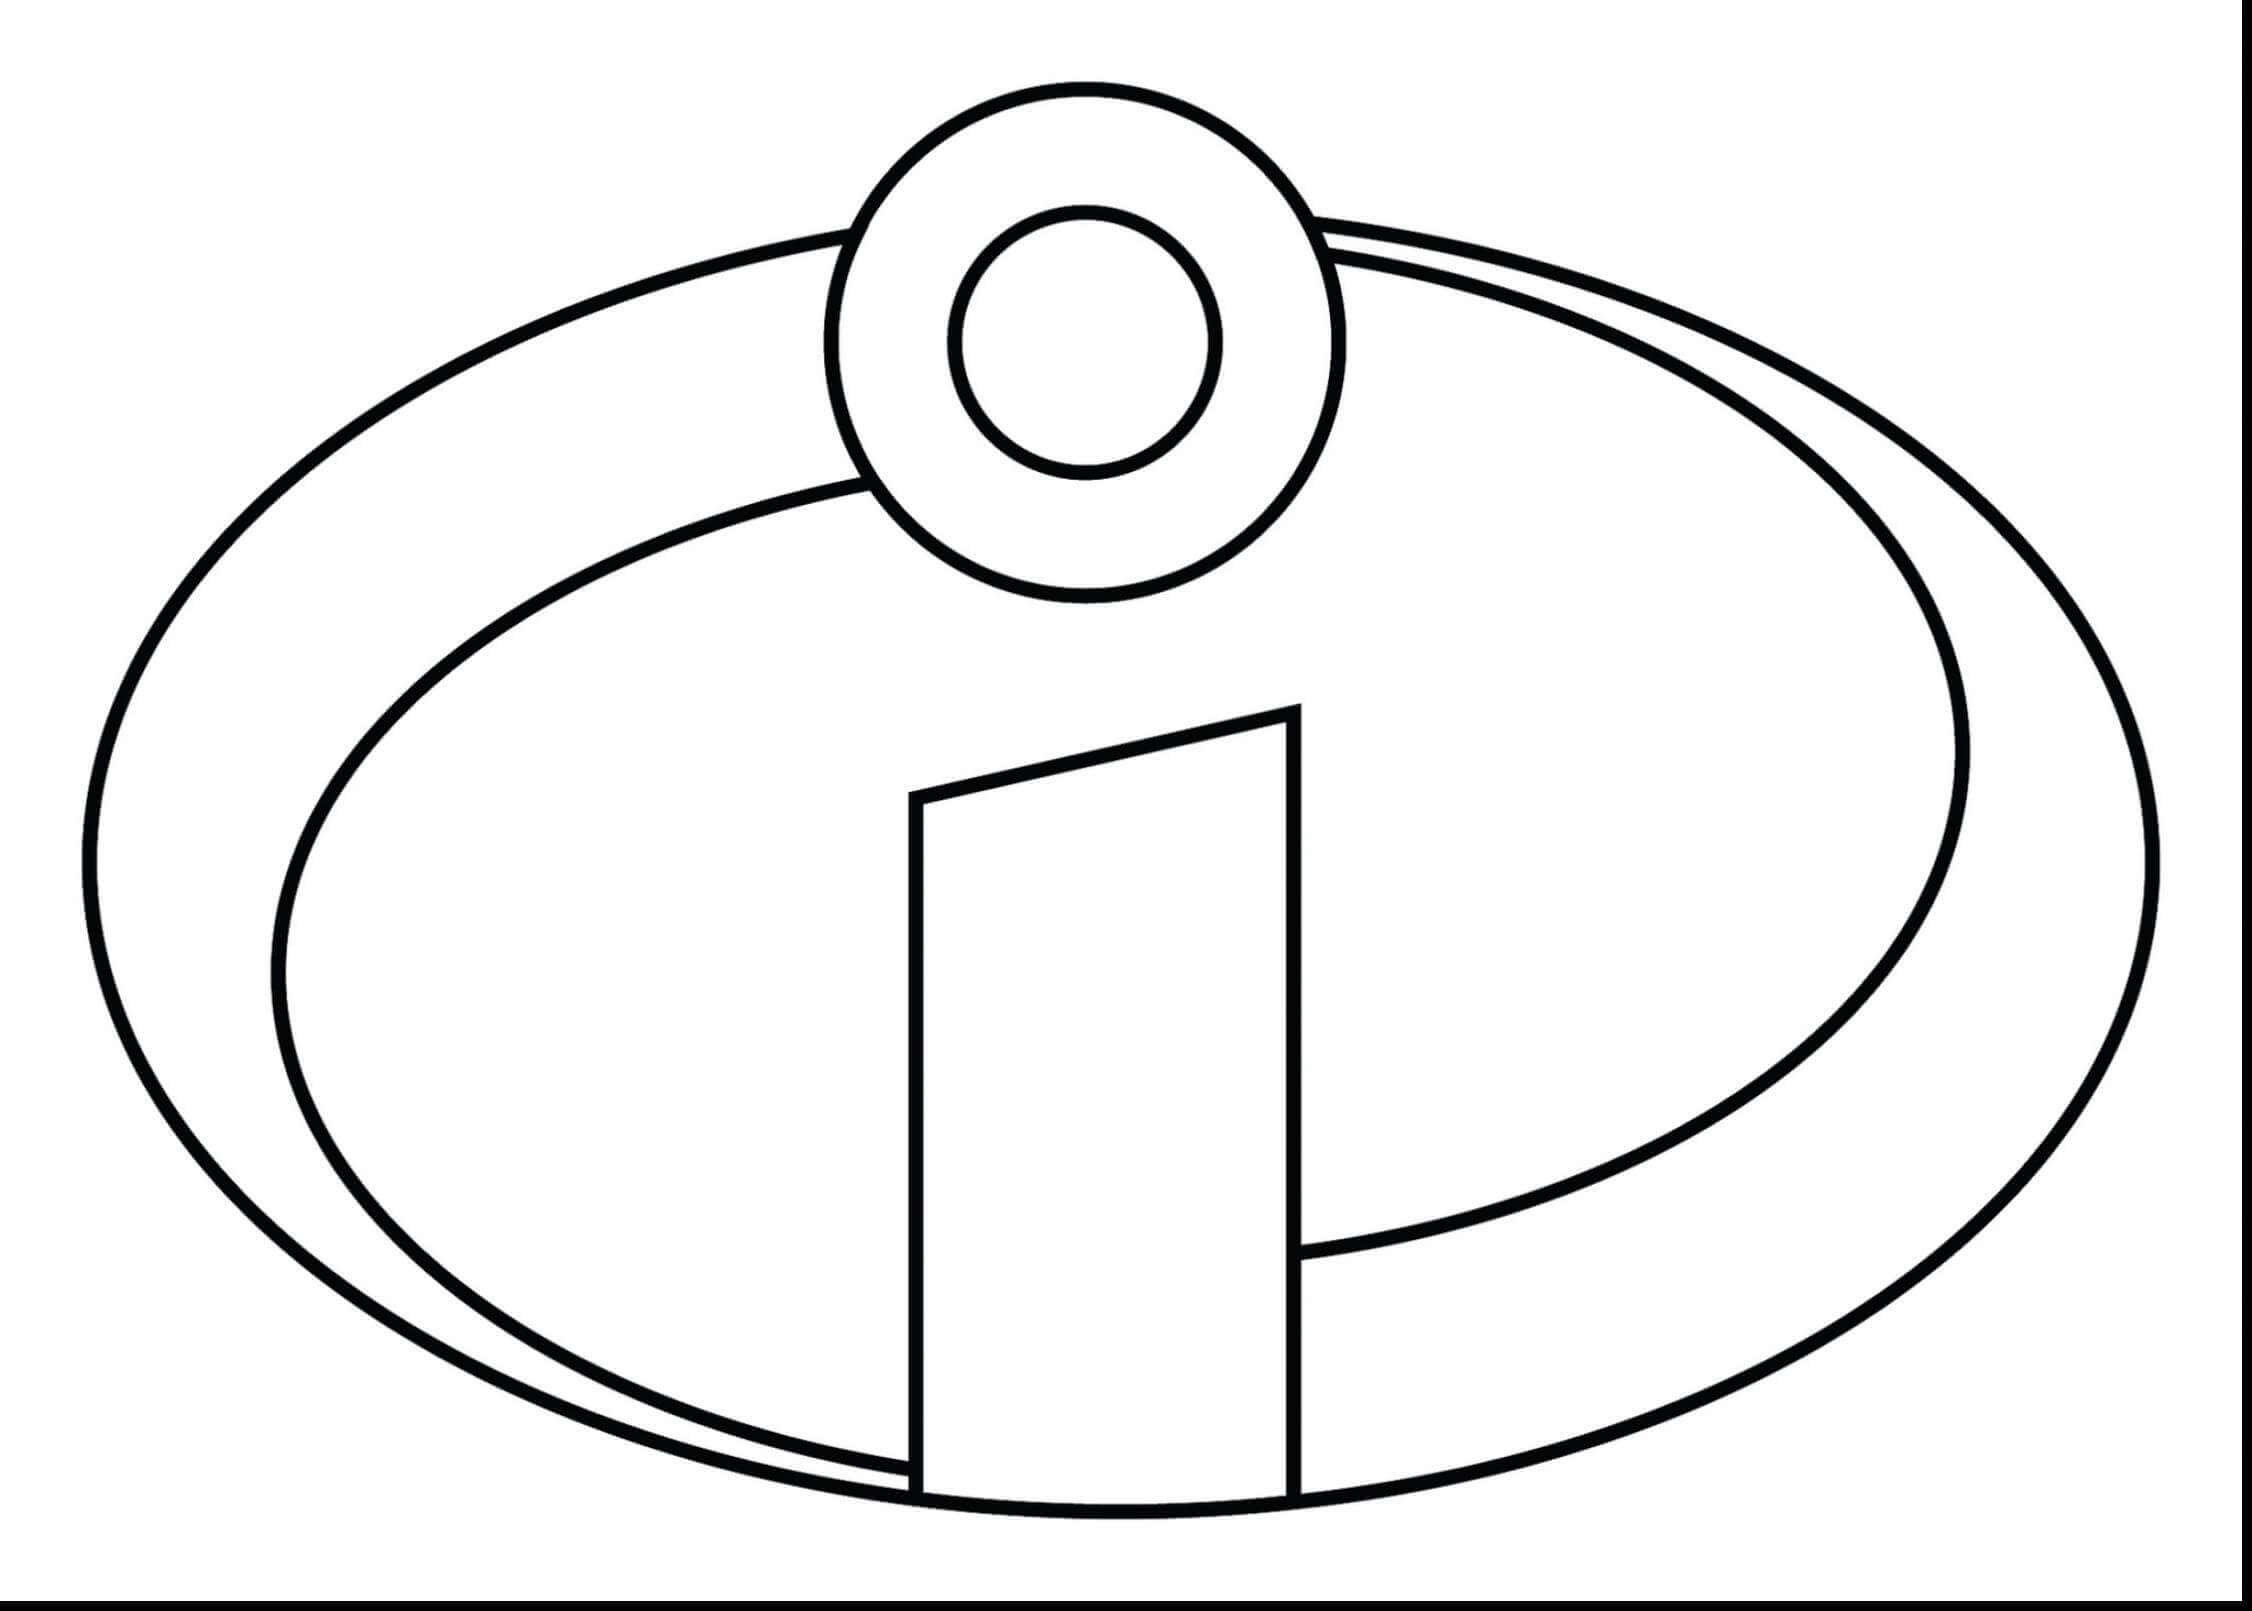 The Incridible Coloring Pages